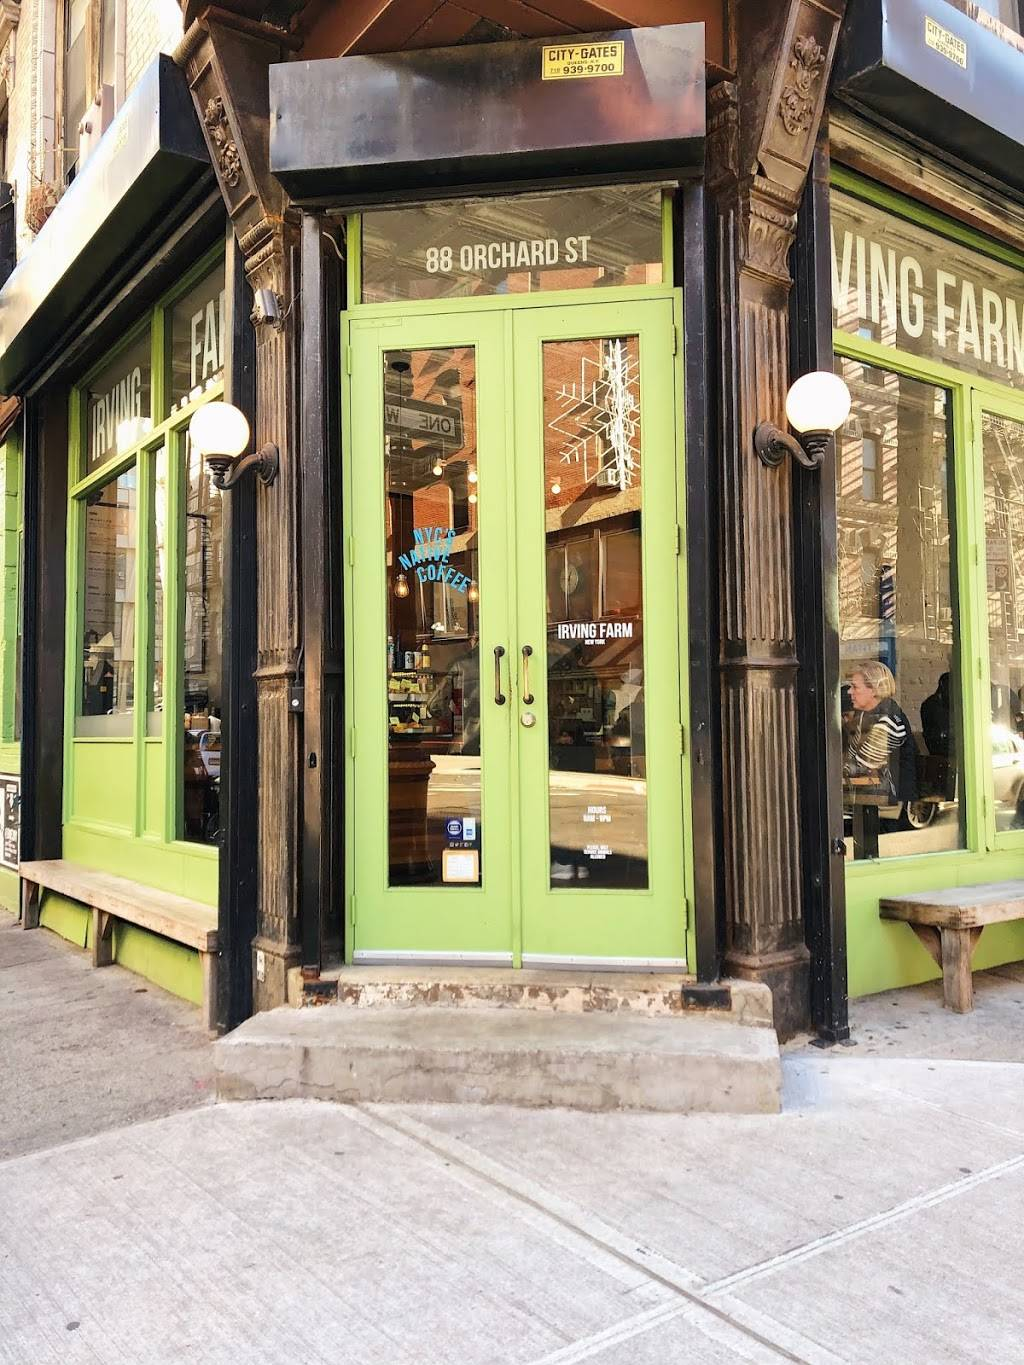 Irving Farm New York | cafe | 88 Orchard St, New York, NY 10002, USA | 2122288880 OR +1 212-228-8880